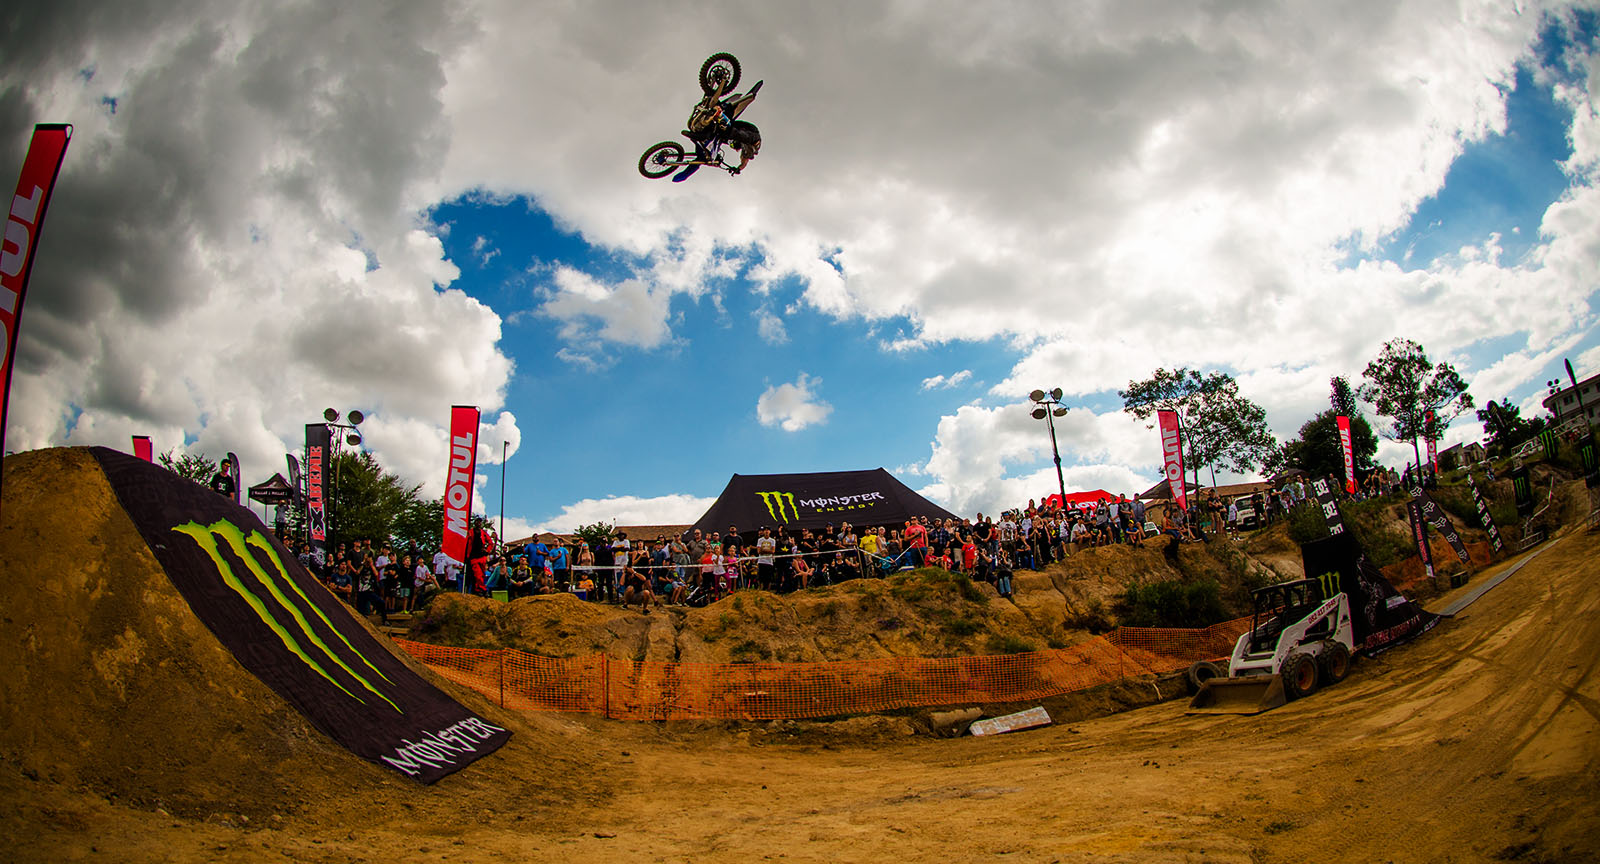 The King has been crowned at the King of the Whip motocross and freestyle motocross event